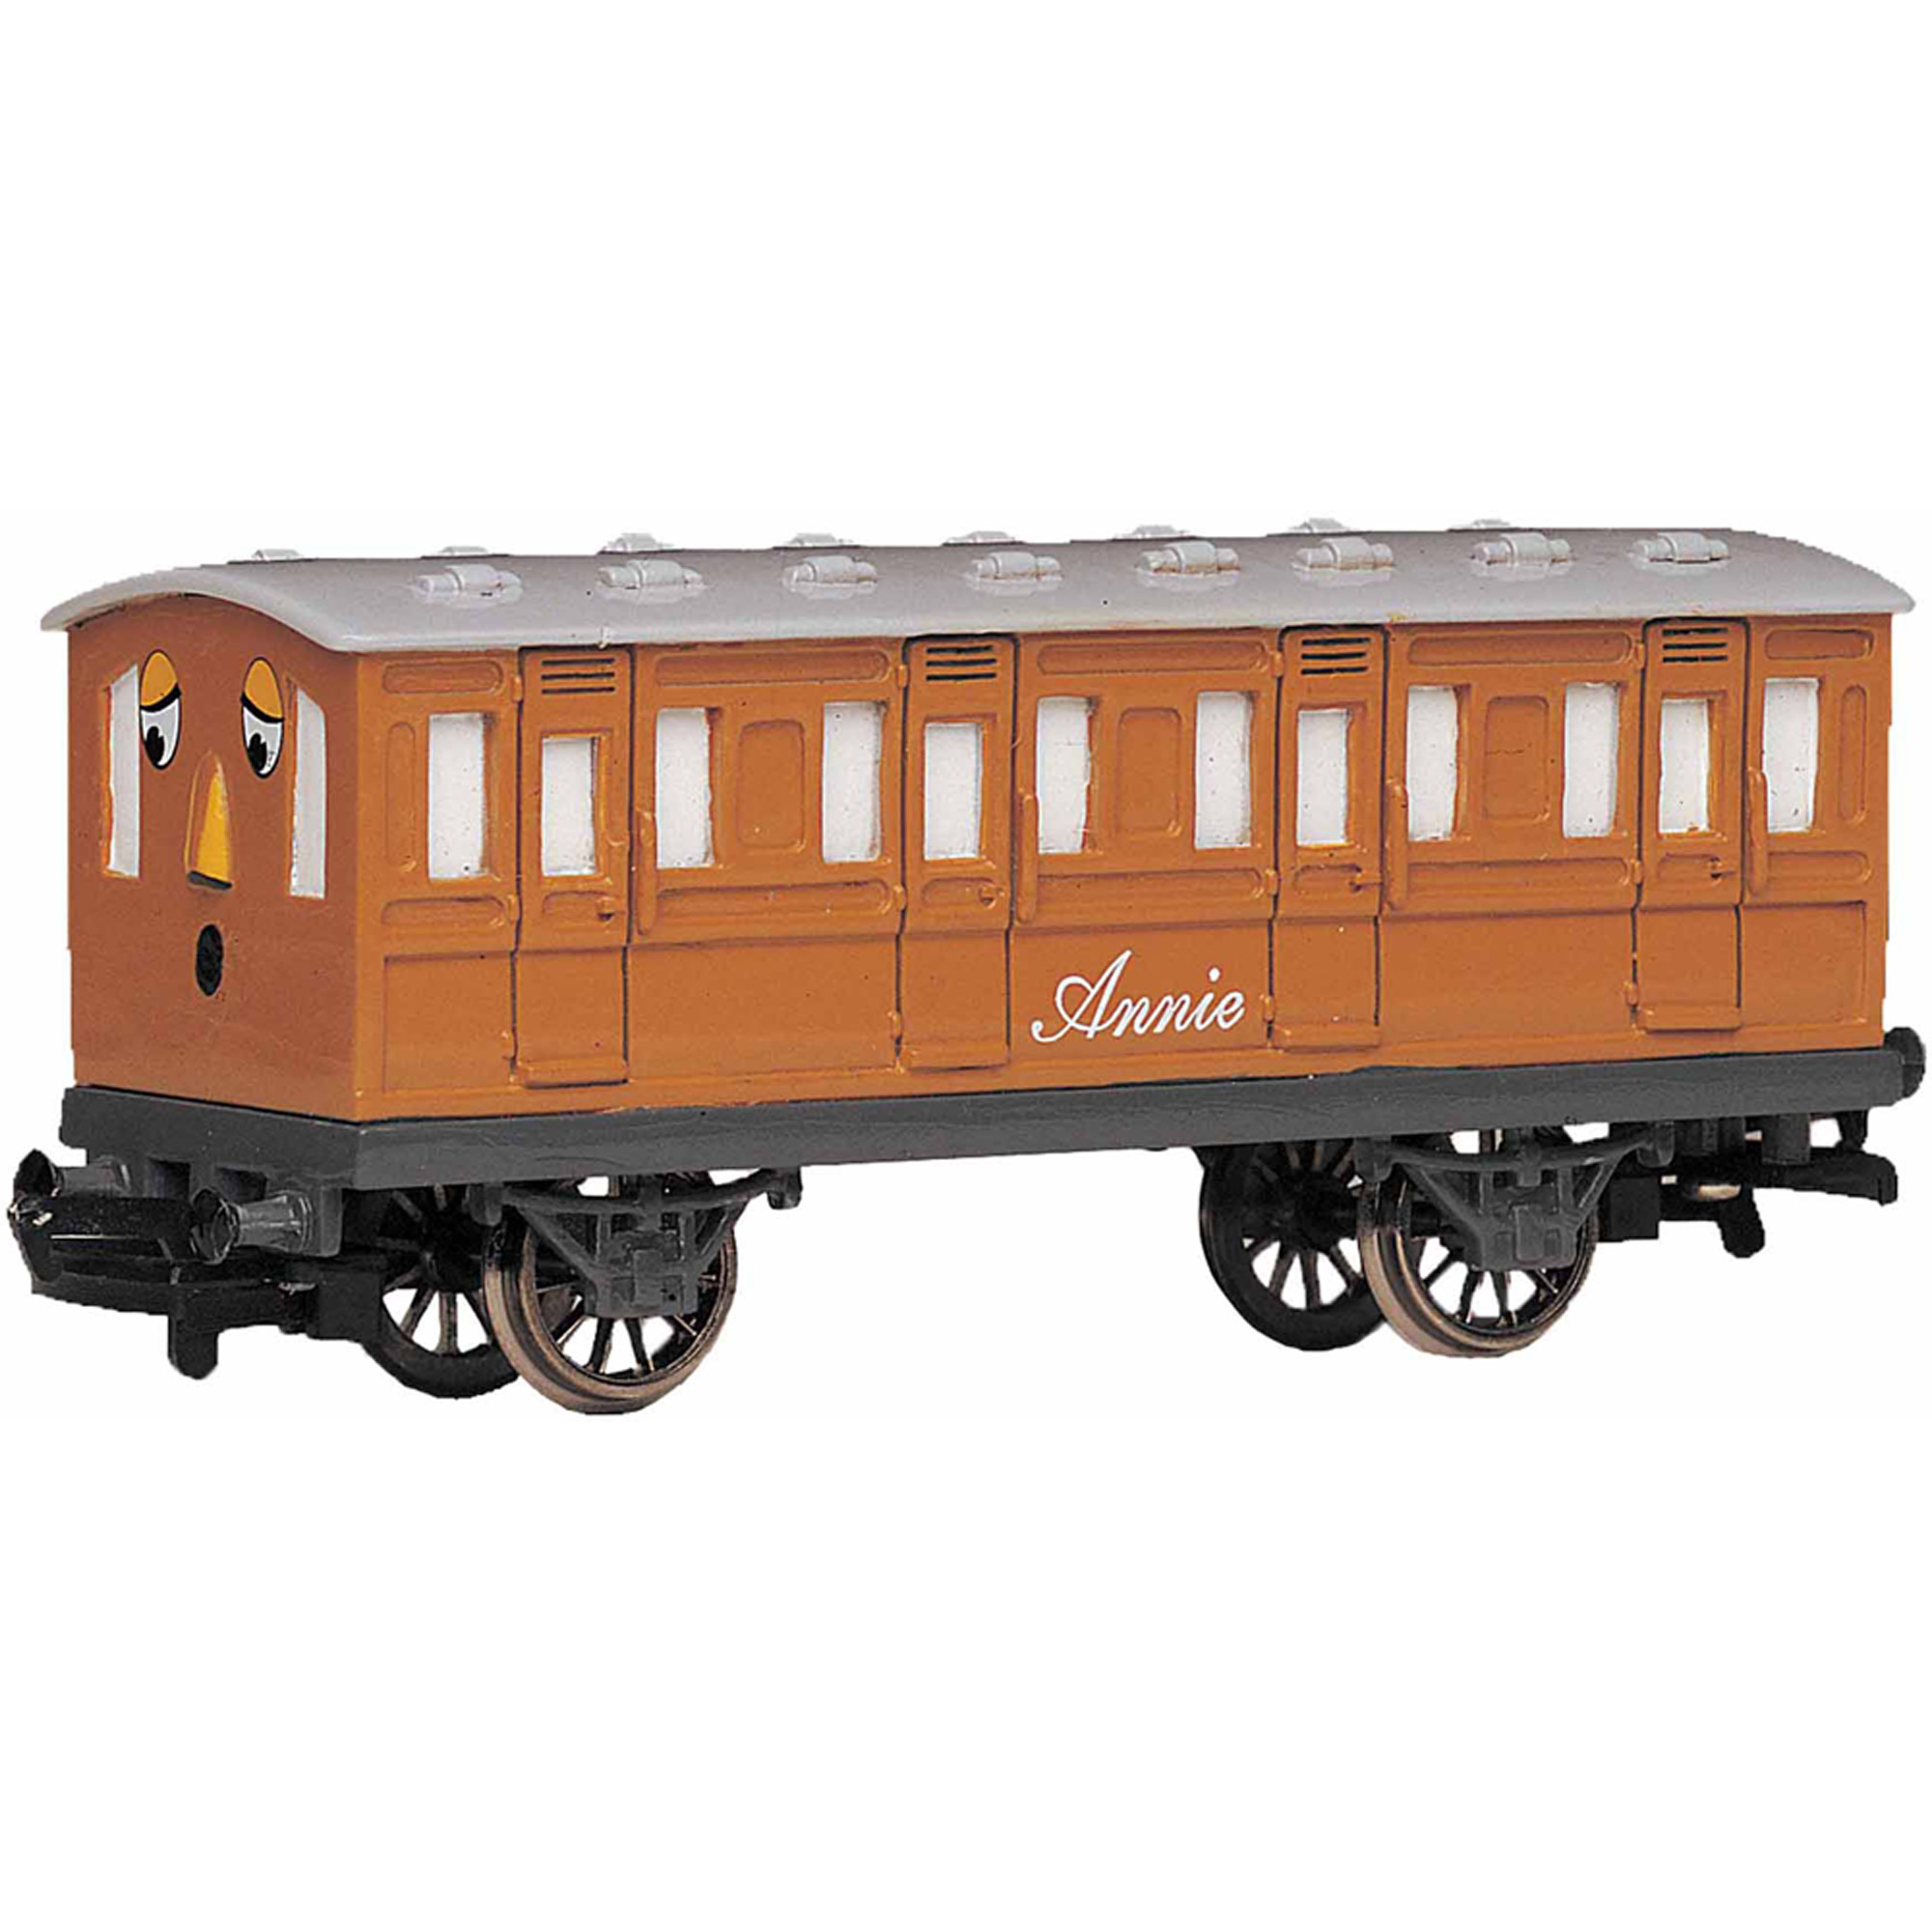 Bachmann Trains Thomas and Friends Annie Coach, HO Scale Train by Bachmann